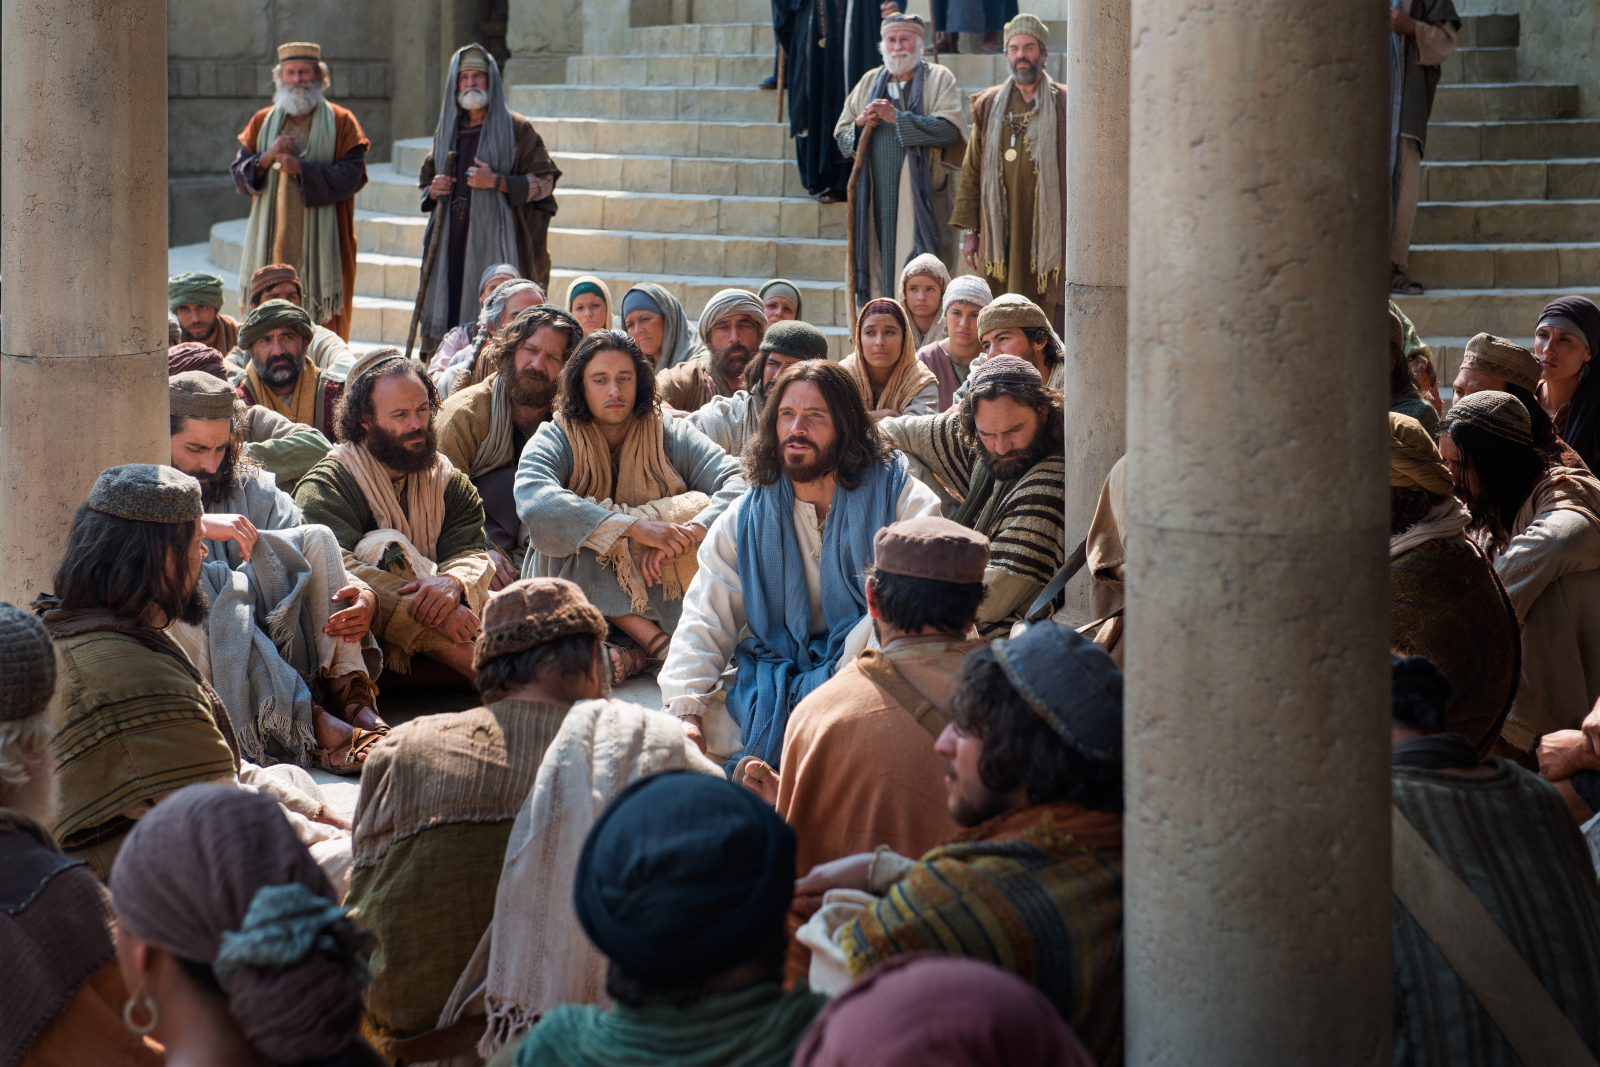 jesus teachings Matthew 4:23 - jesus was going throughout all galilee, teaching in their synagogues and proclaiming the gospel of the kingdom, and healing every kind of disease and every kind of sickness among the people.